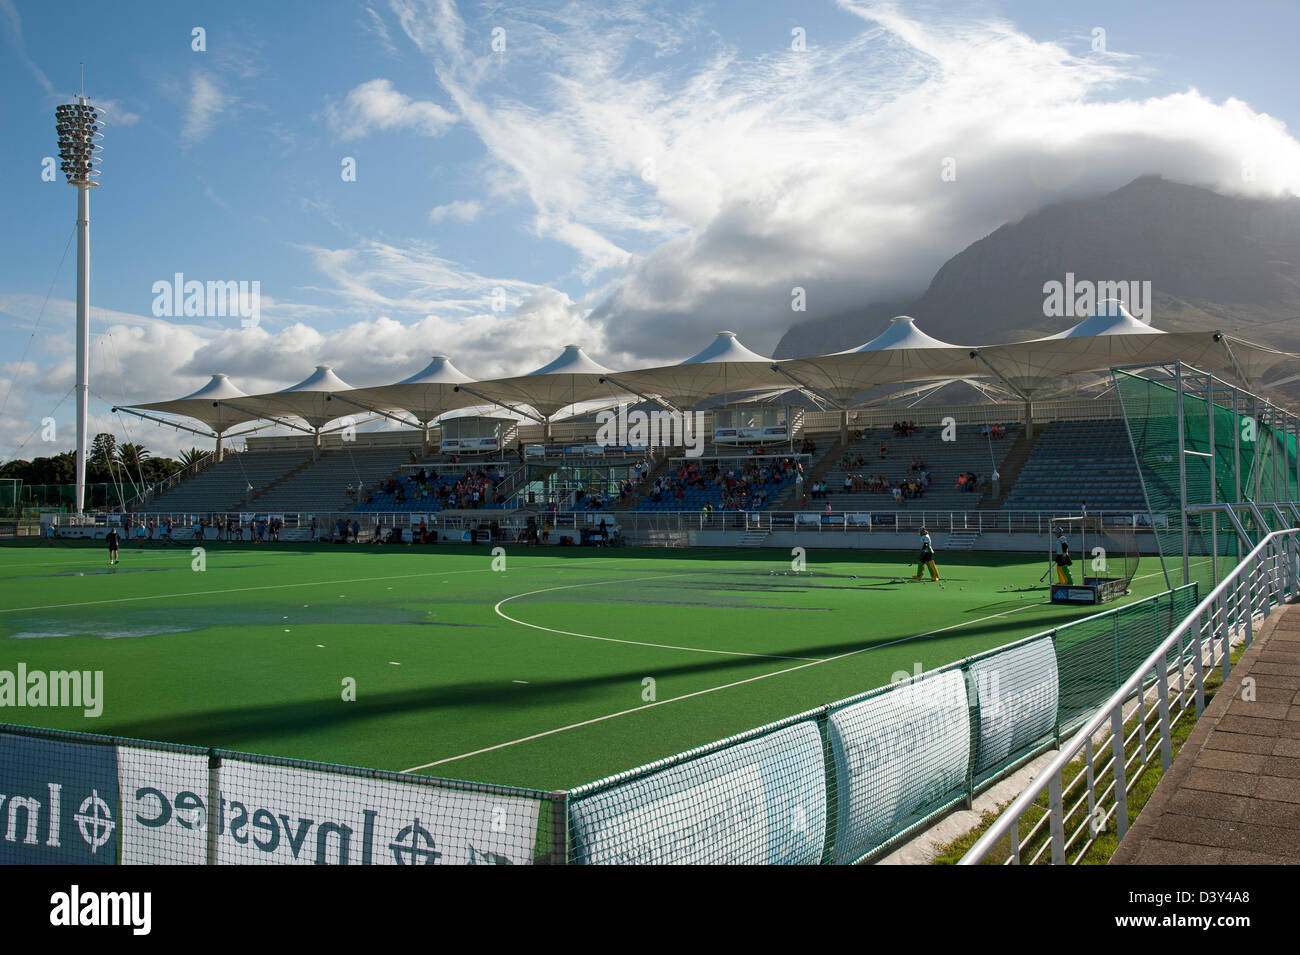 Hartleyvale Hockey Stadium Cape Town South Africa. Home of Western Province Hockey - Stock Image